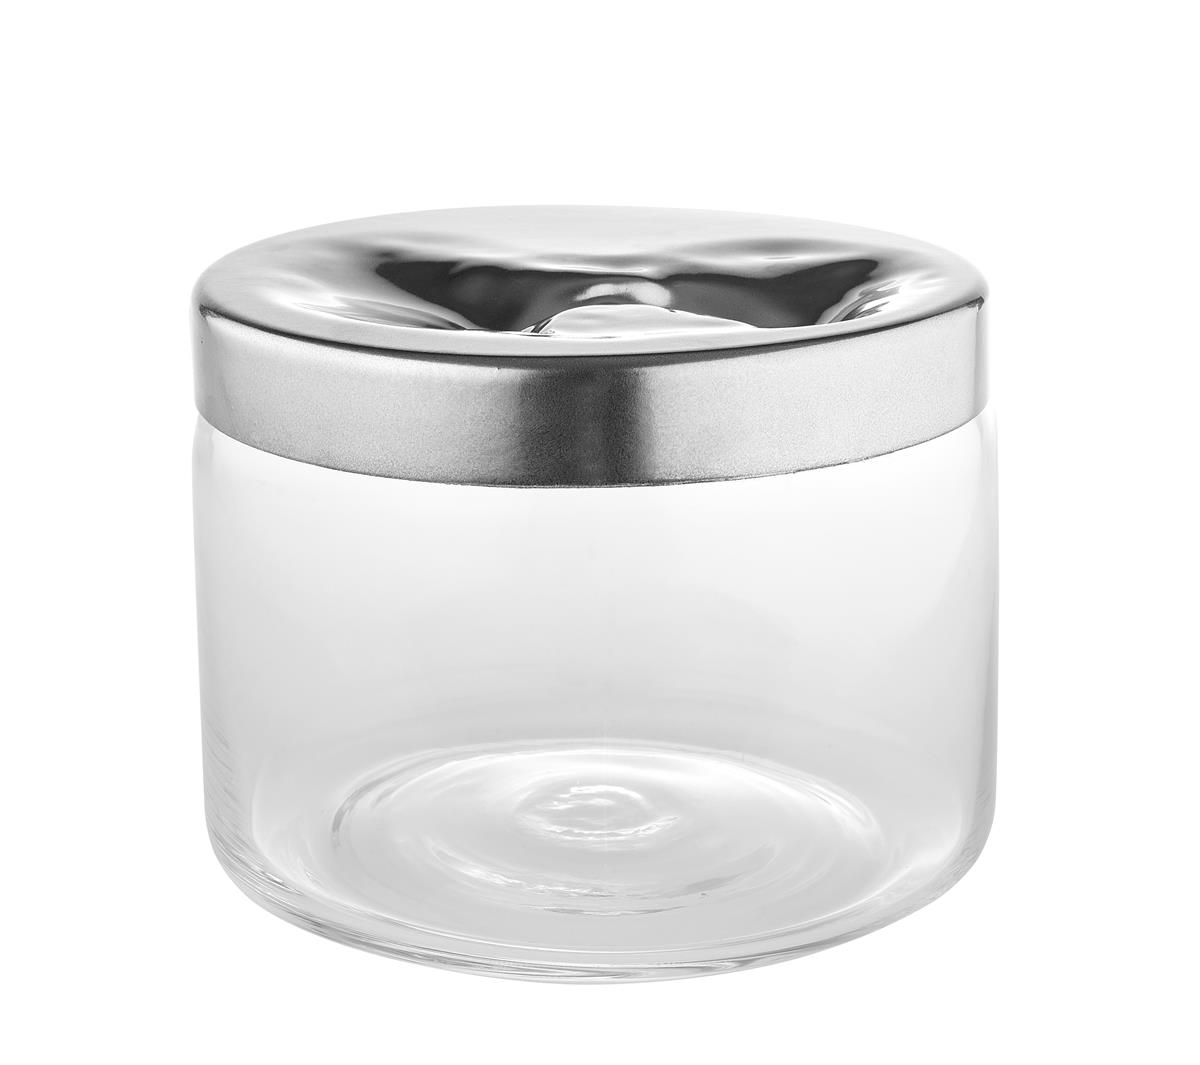 Alessi-Carmeta Glass cookie jar with 18/10 stainless steel lid